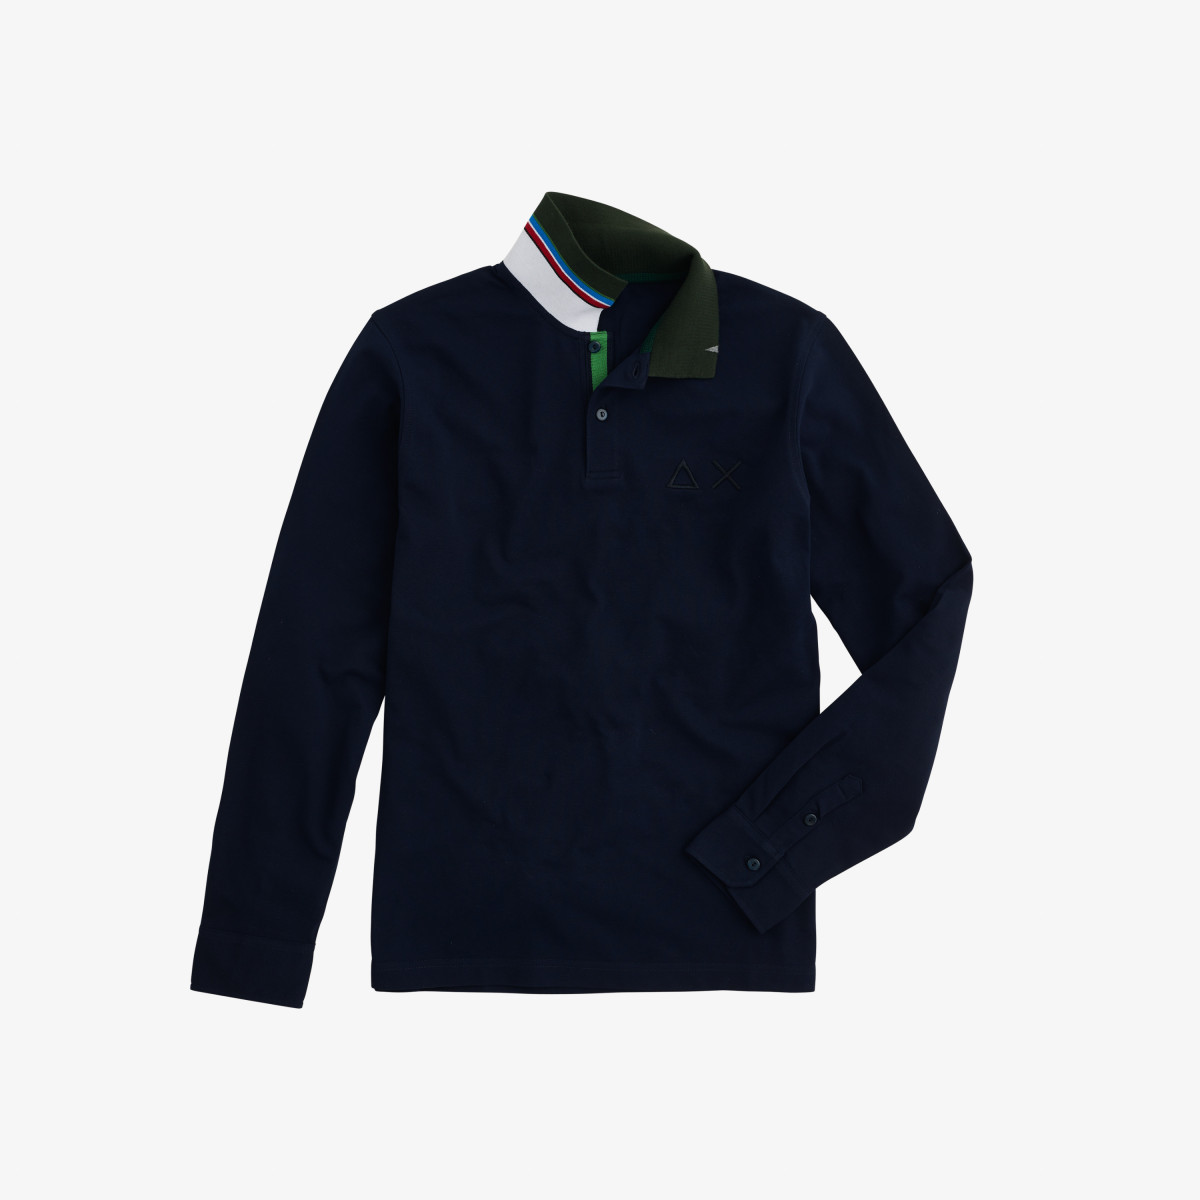 POLO EL. UNDER COLLAR STRIPE L/S NAVY BLUE